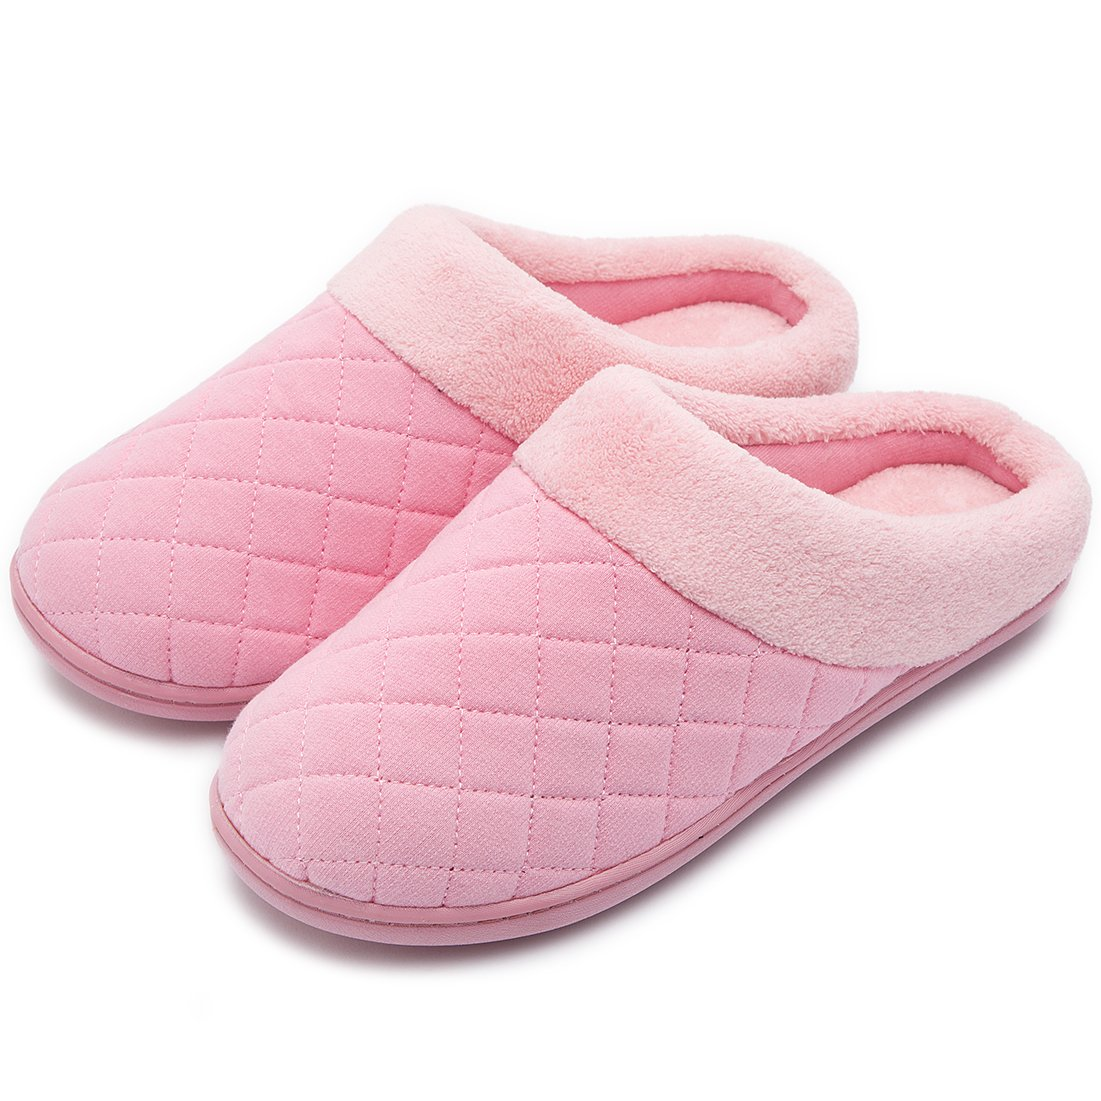 Women's Comfort Quilted Memory Foam Fleece Lining House Slippers Slip On Clog House Shoes (Medium / 7-8 B(M) US, Pink)